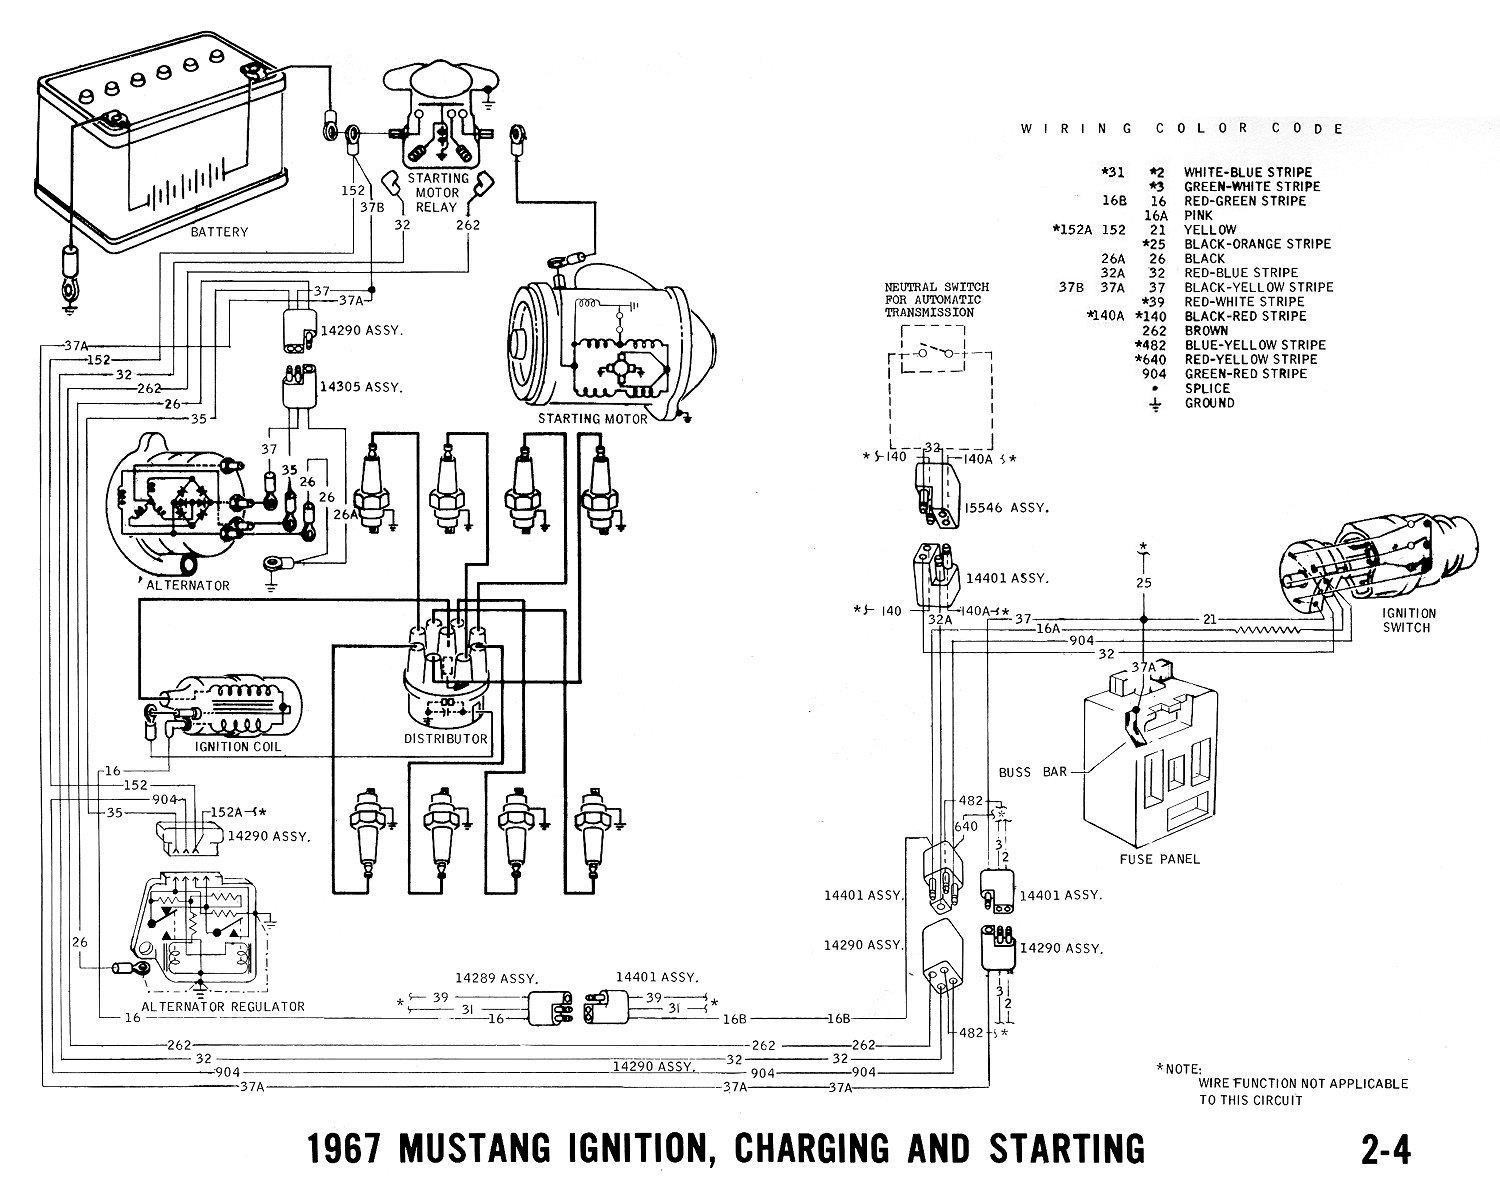 1967 Camaro Regulator Wiring Diagram Electricity Basics 101 67 Engine Schematic Voltage Circuit Diagrams Rh Adcoreme Co For Rs Ss